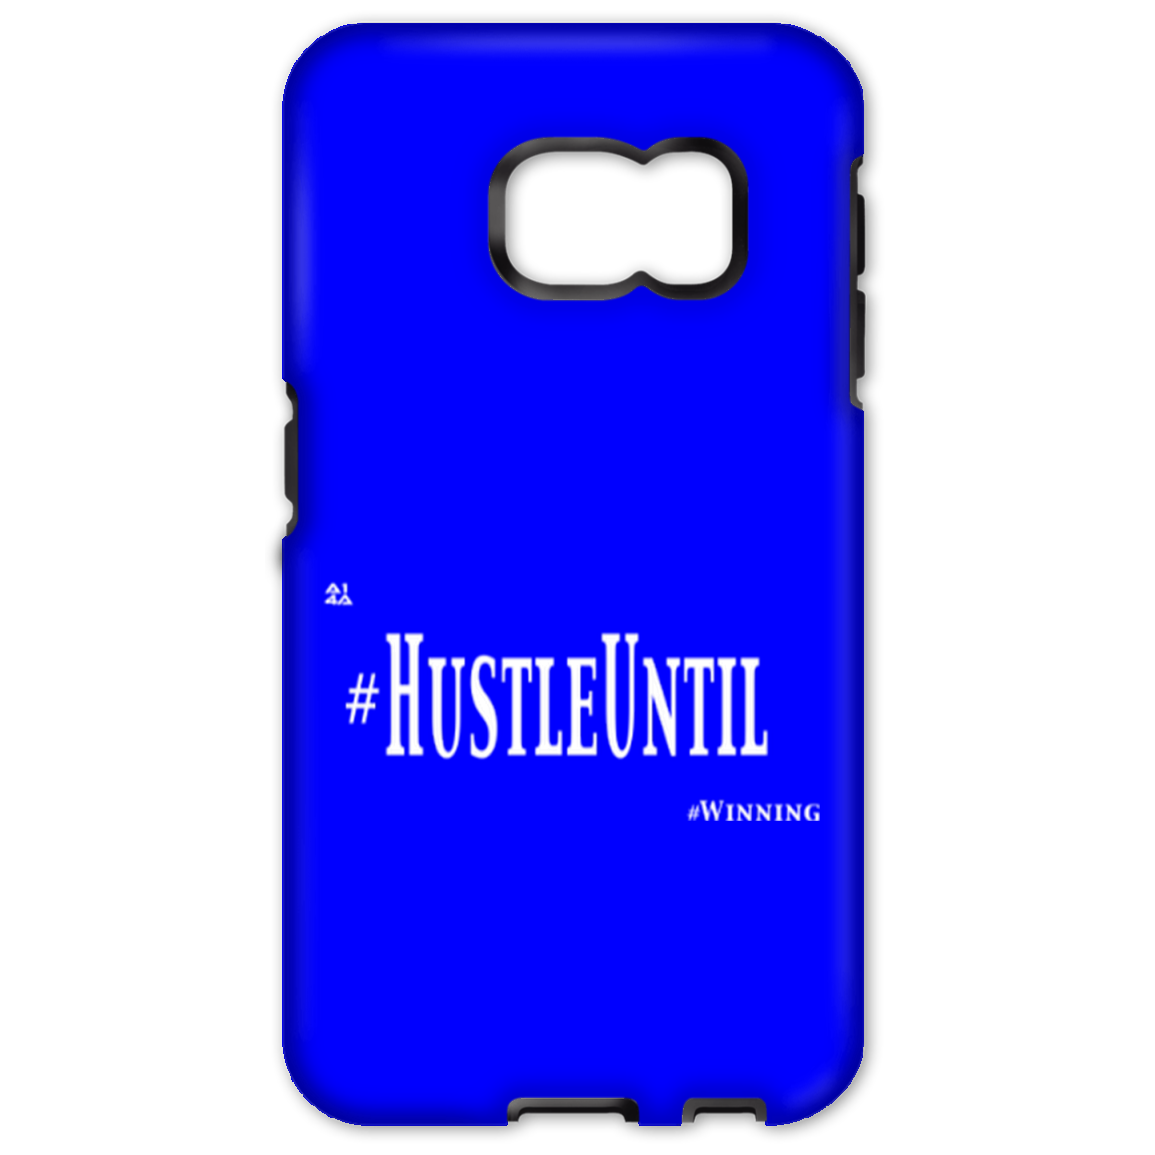 HUSTLE UNTIL - Samsung Galaxy S6 Edge Tough